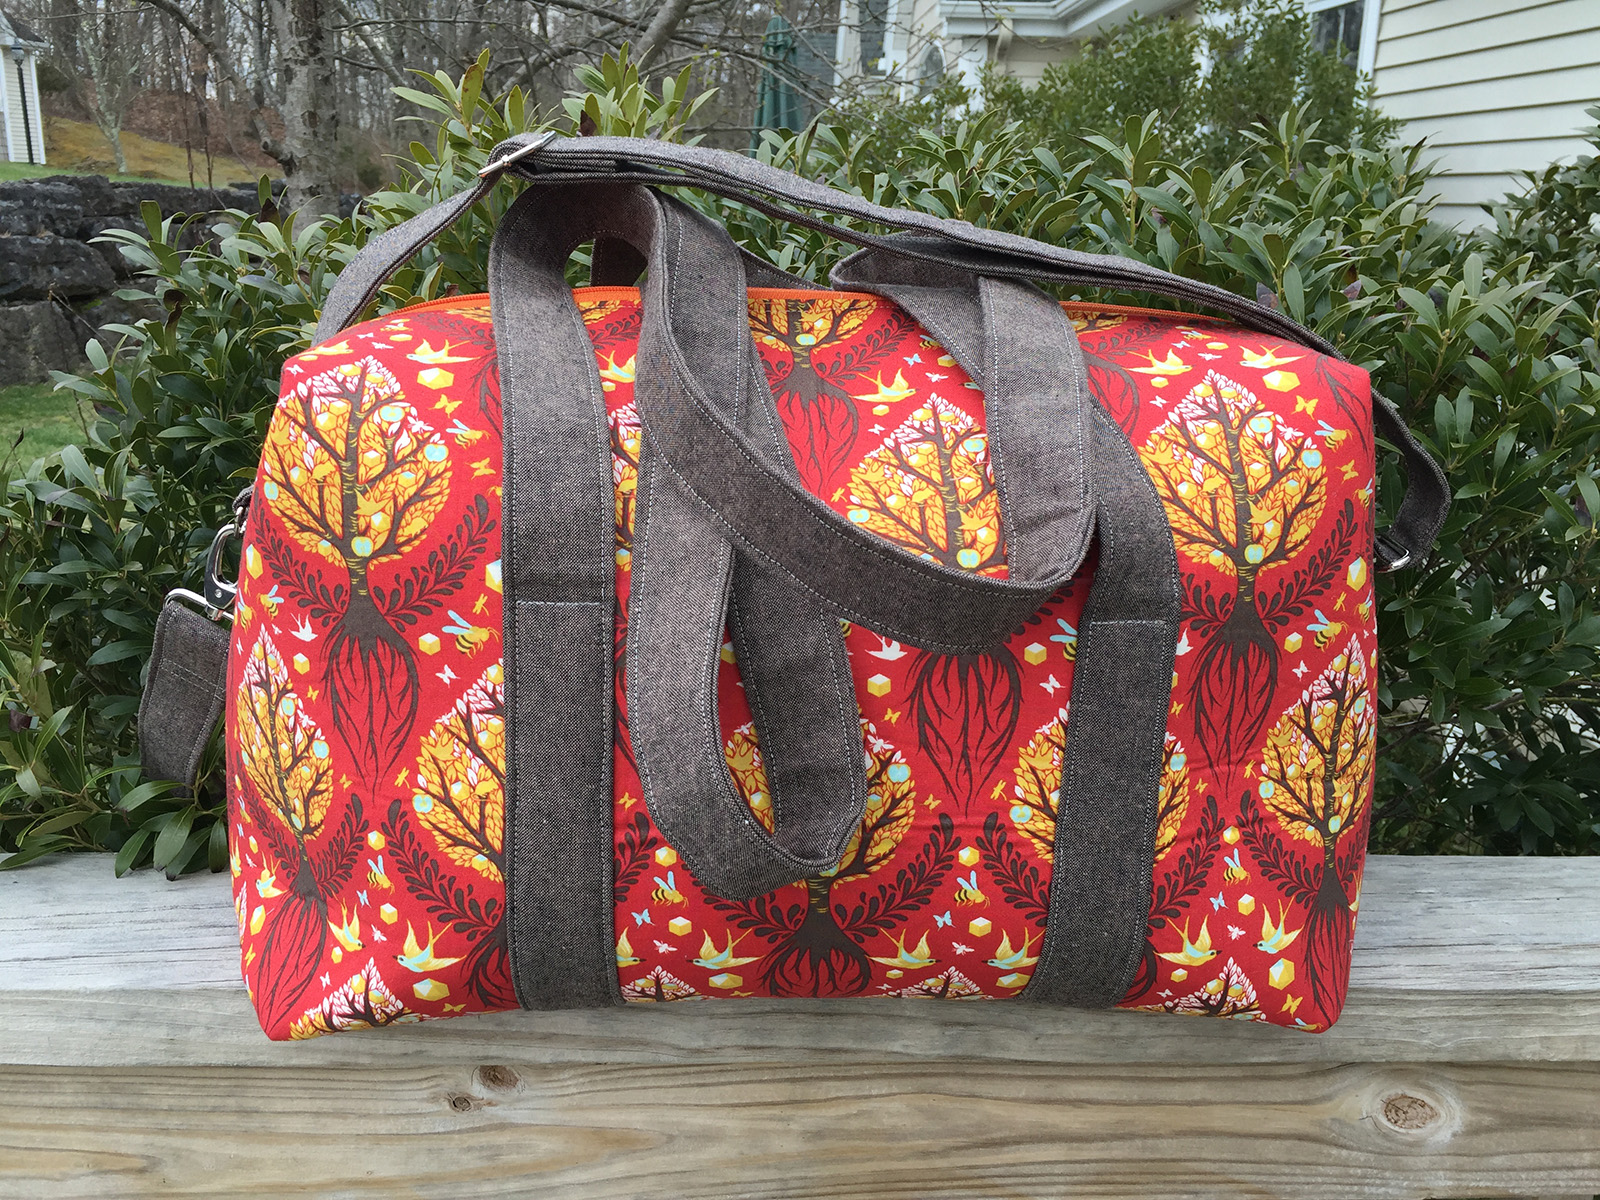 Sew Sweetness Emblem Duffle Bag, sewn by Madelyn